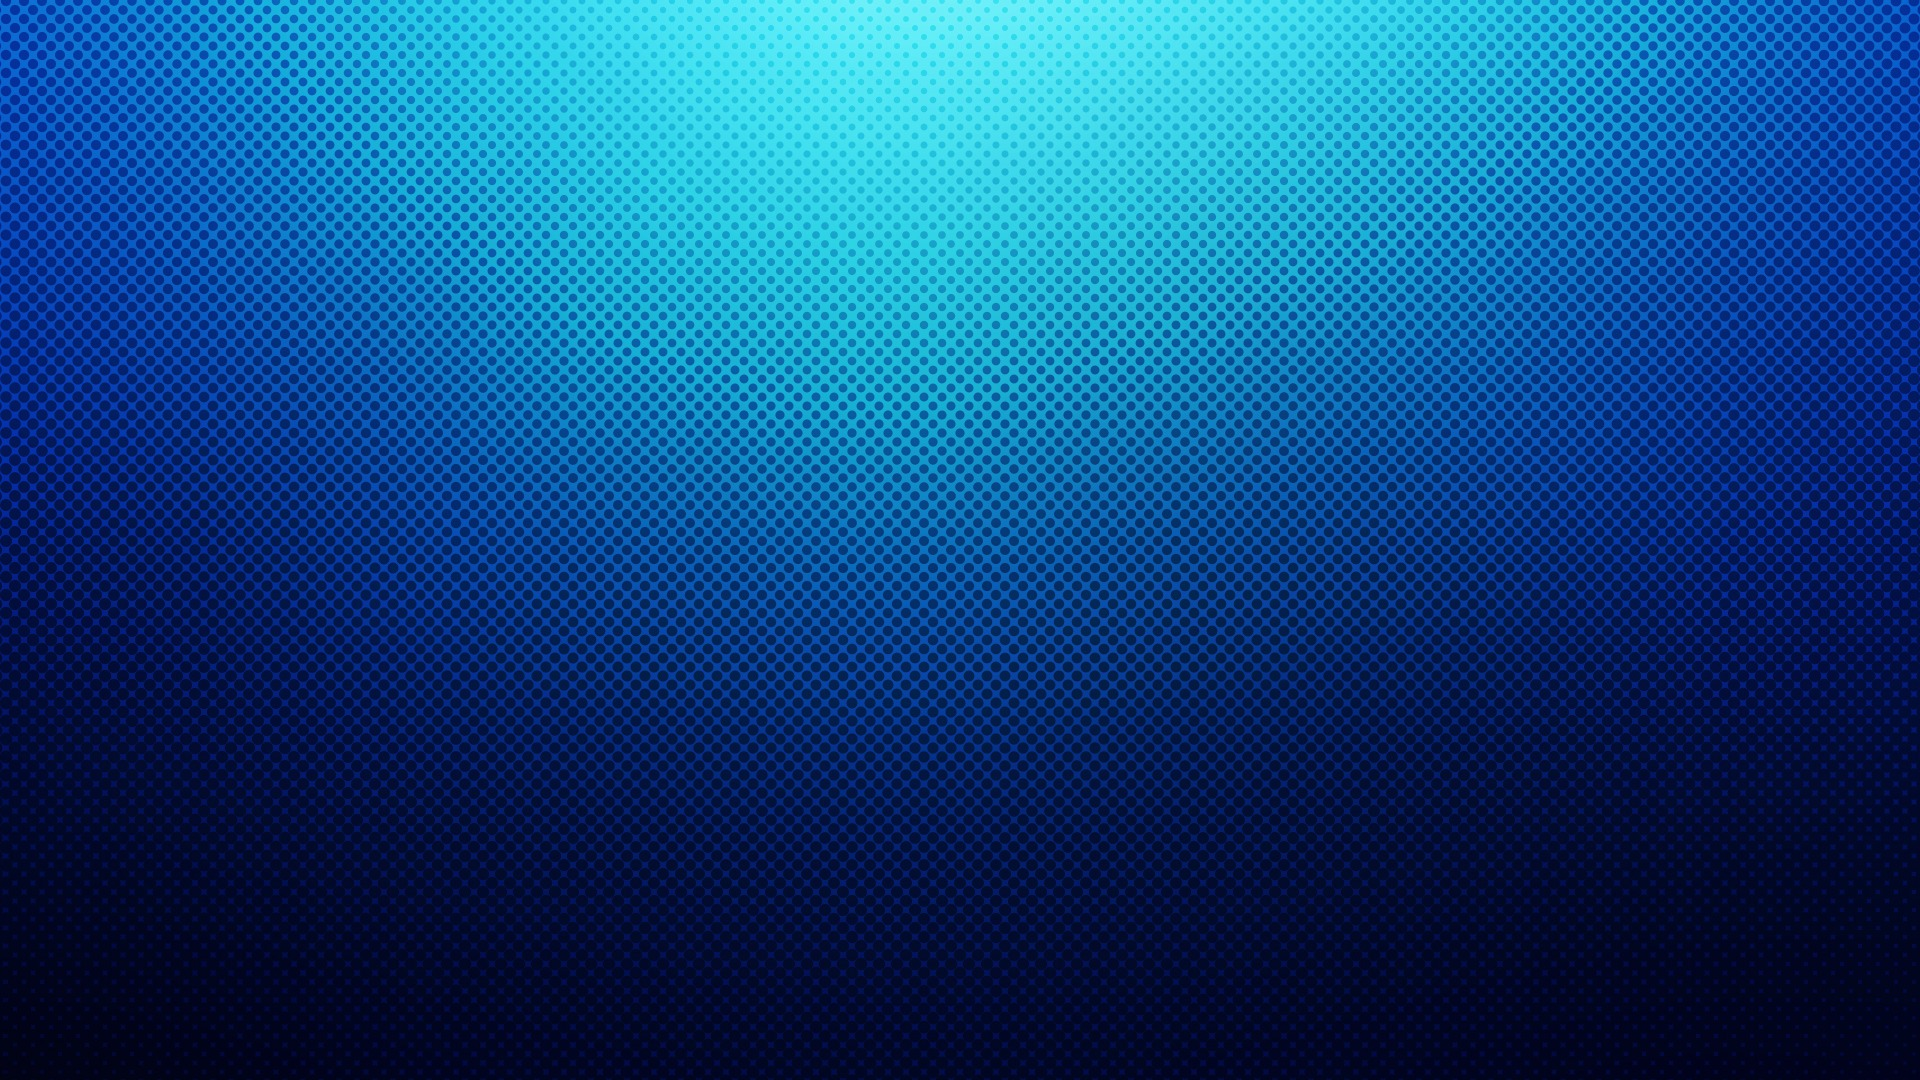 Blue Gradient Background HD Wallpaper GSEII VISION 2030 1920x1080